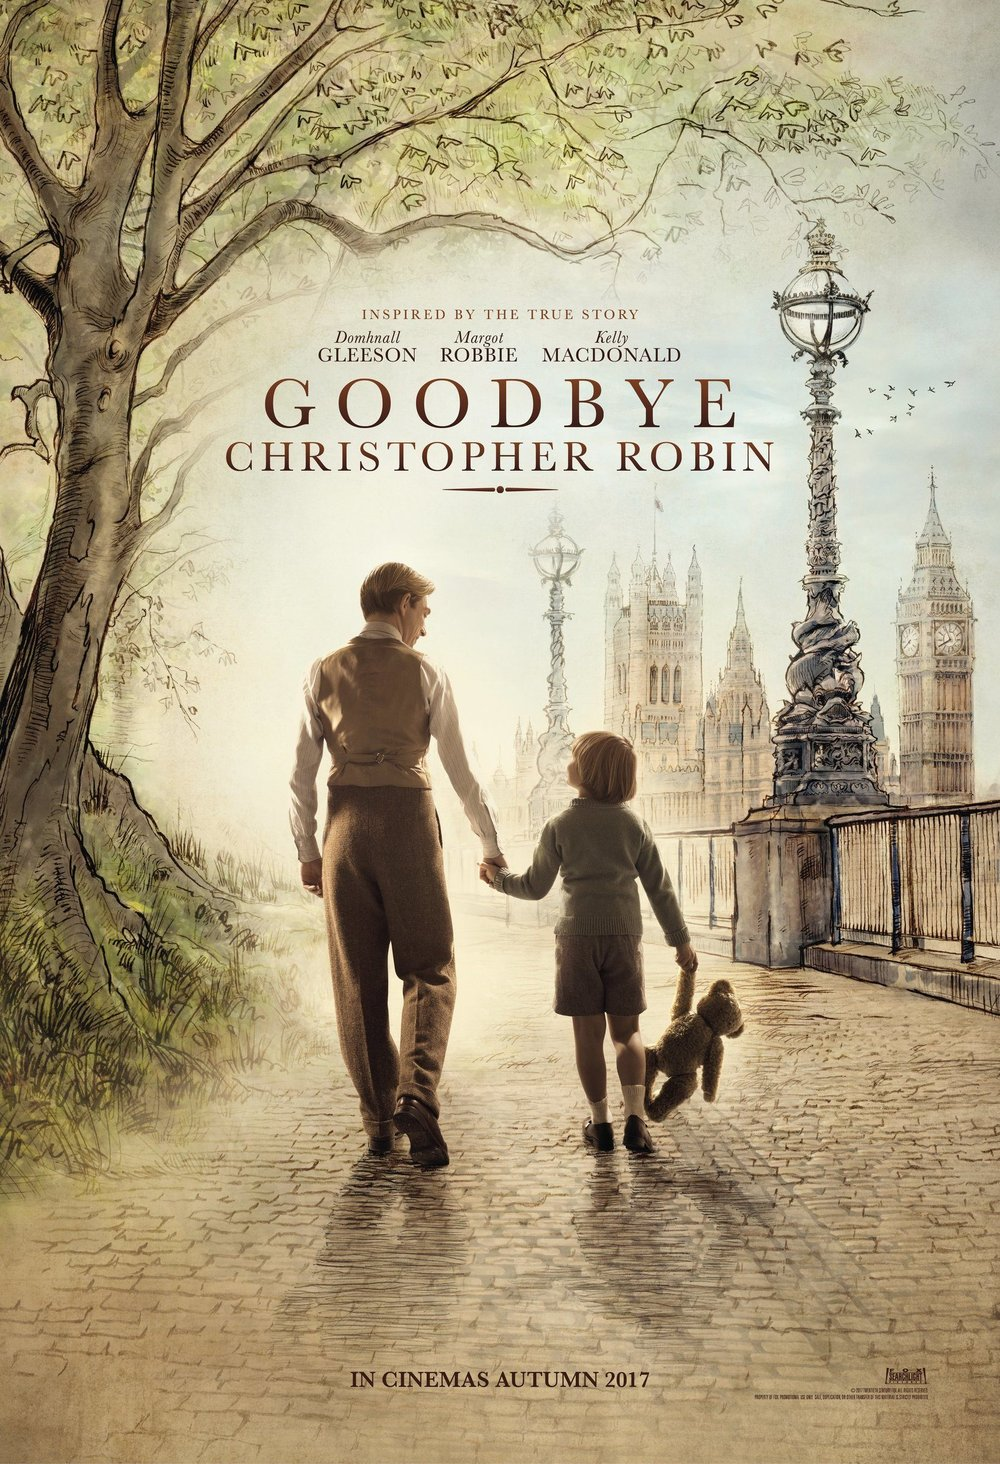 Goodbye-Christopher-Robin-first-posters-1.jpg